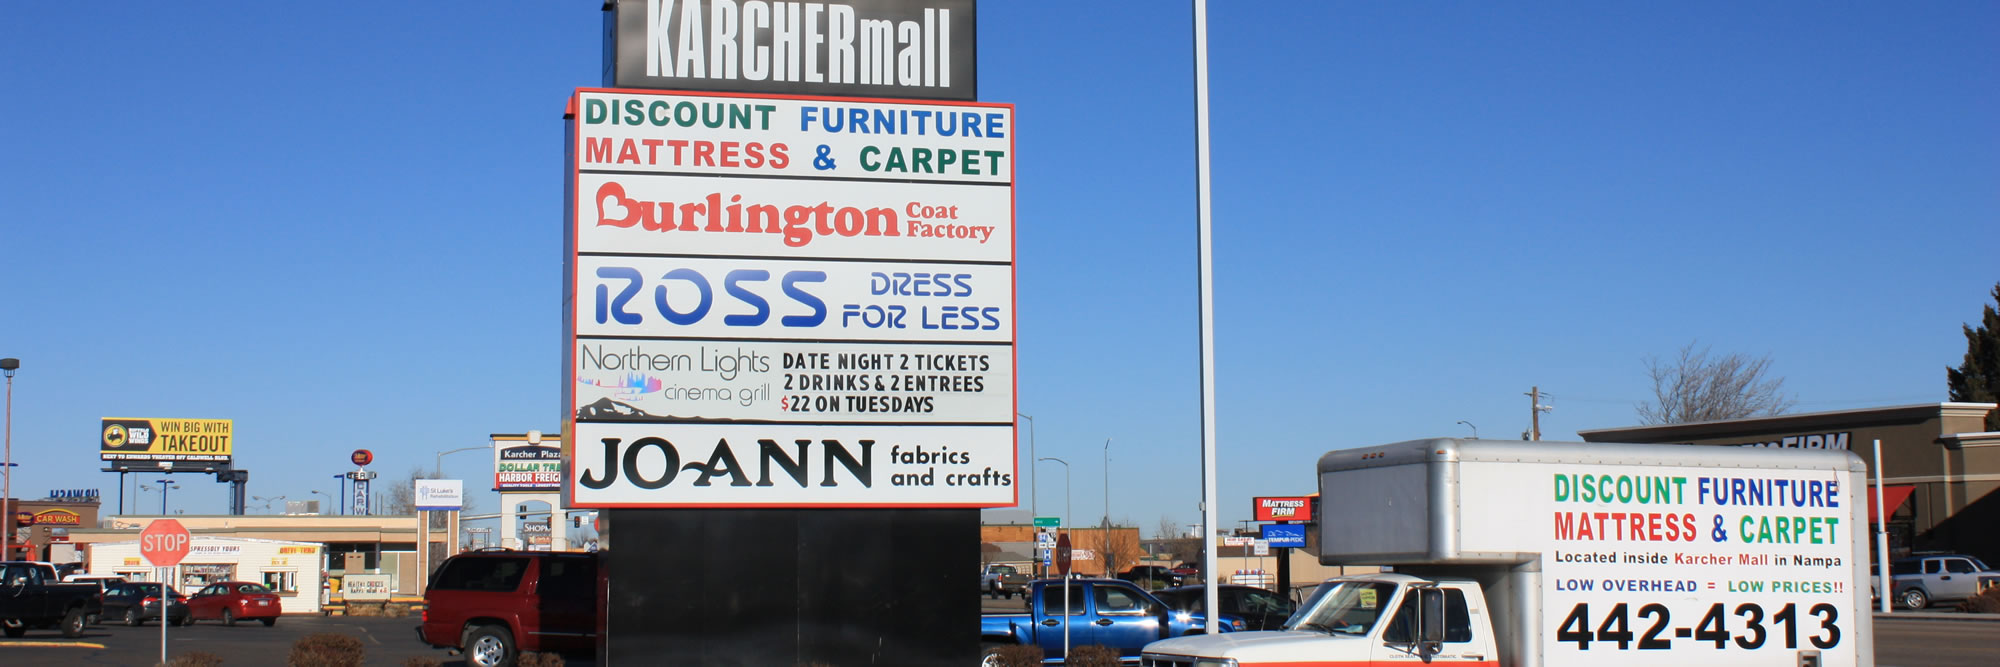 Discount Furniture and Mattress in the Karcher Mall